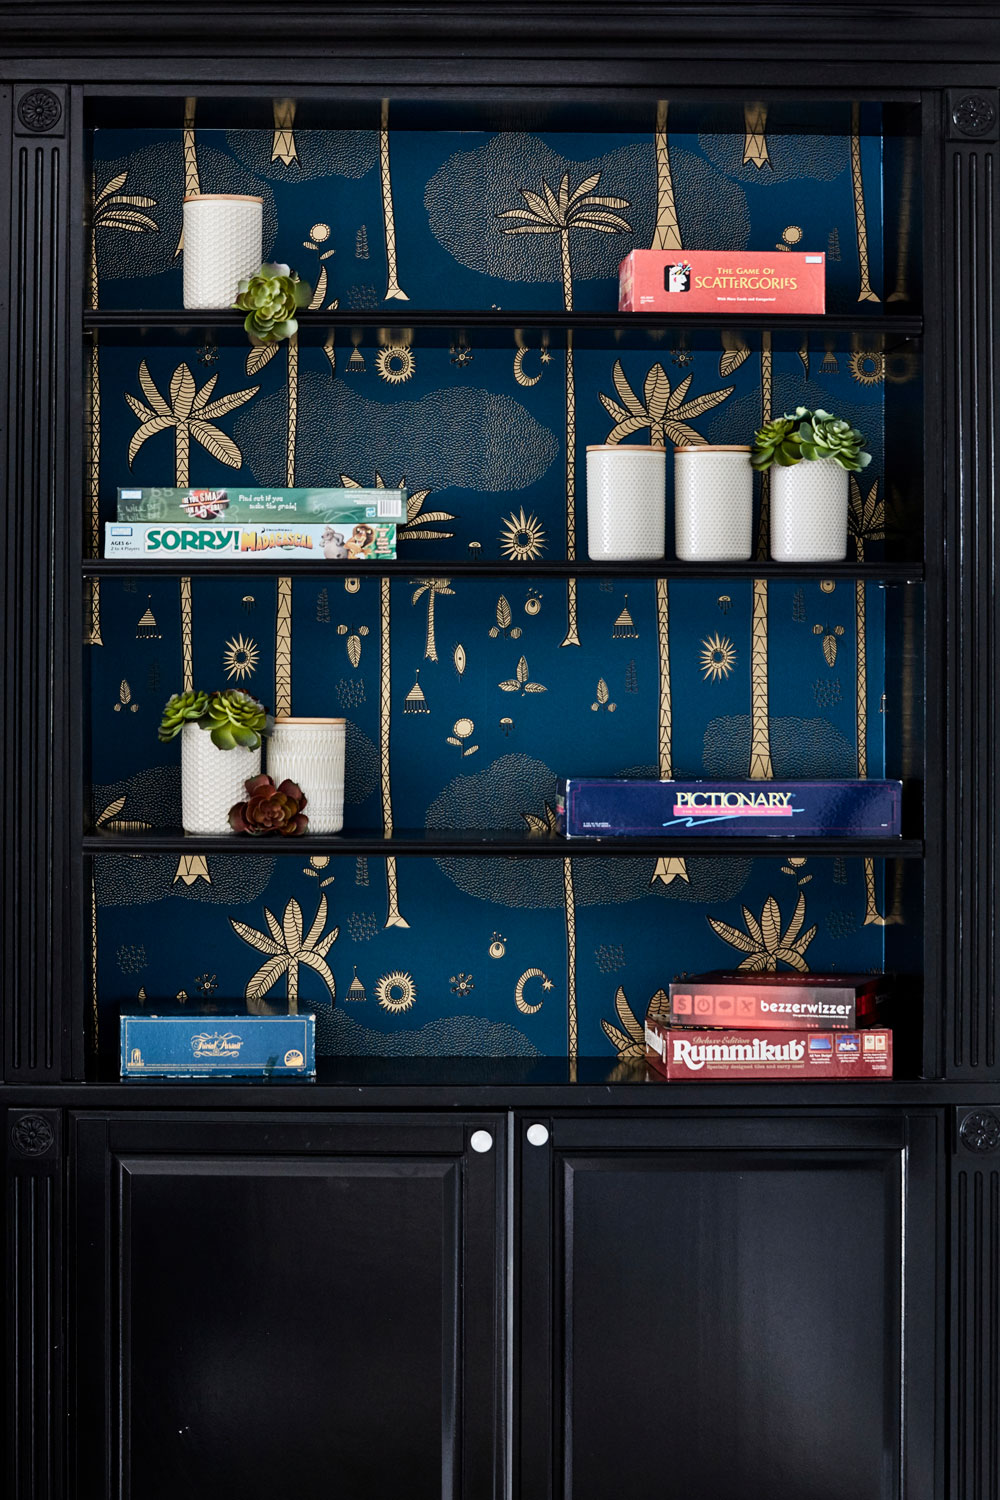 Justina Blakeney's Cosmic Desert wallpaper from Hygge & West is the coolest backdrop for these black built-in cabinets.